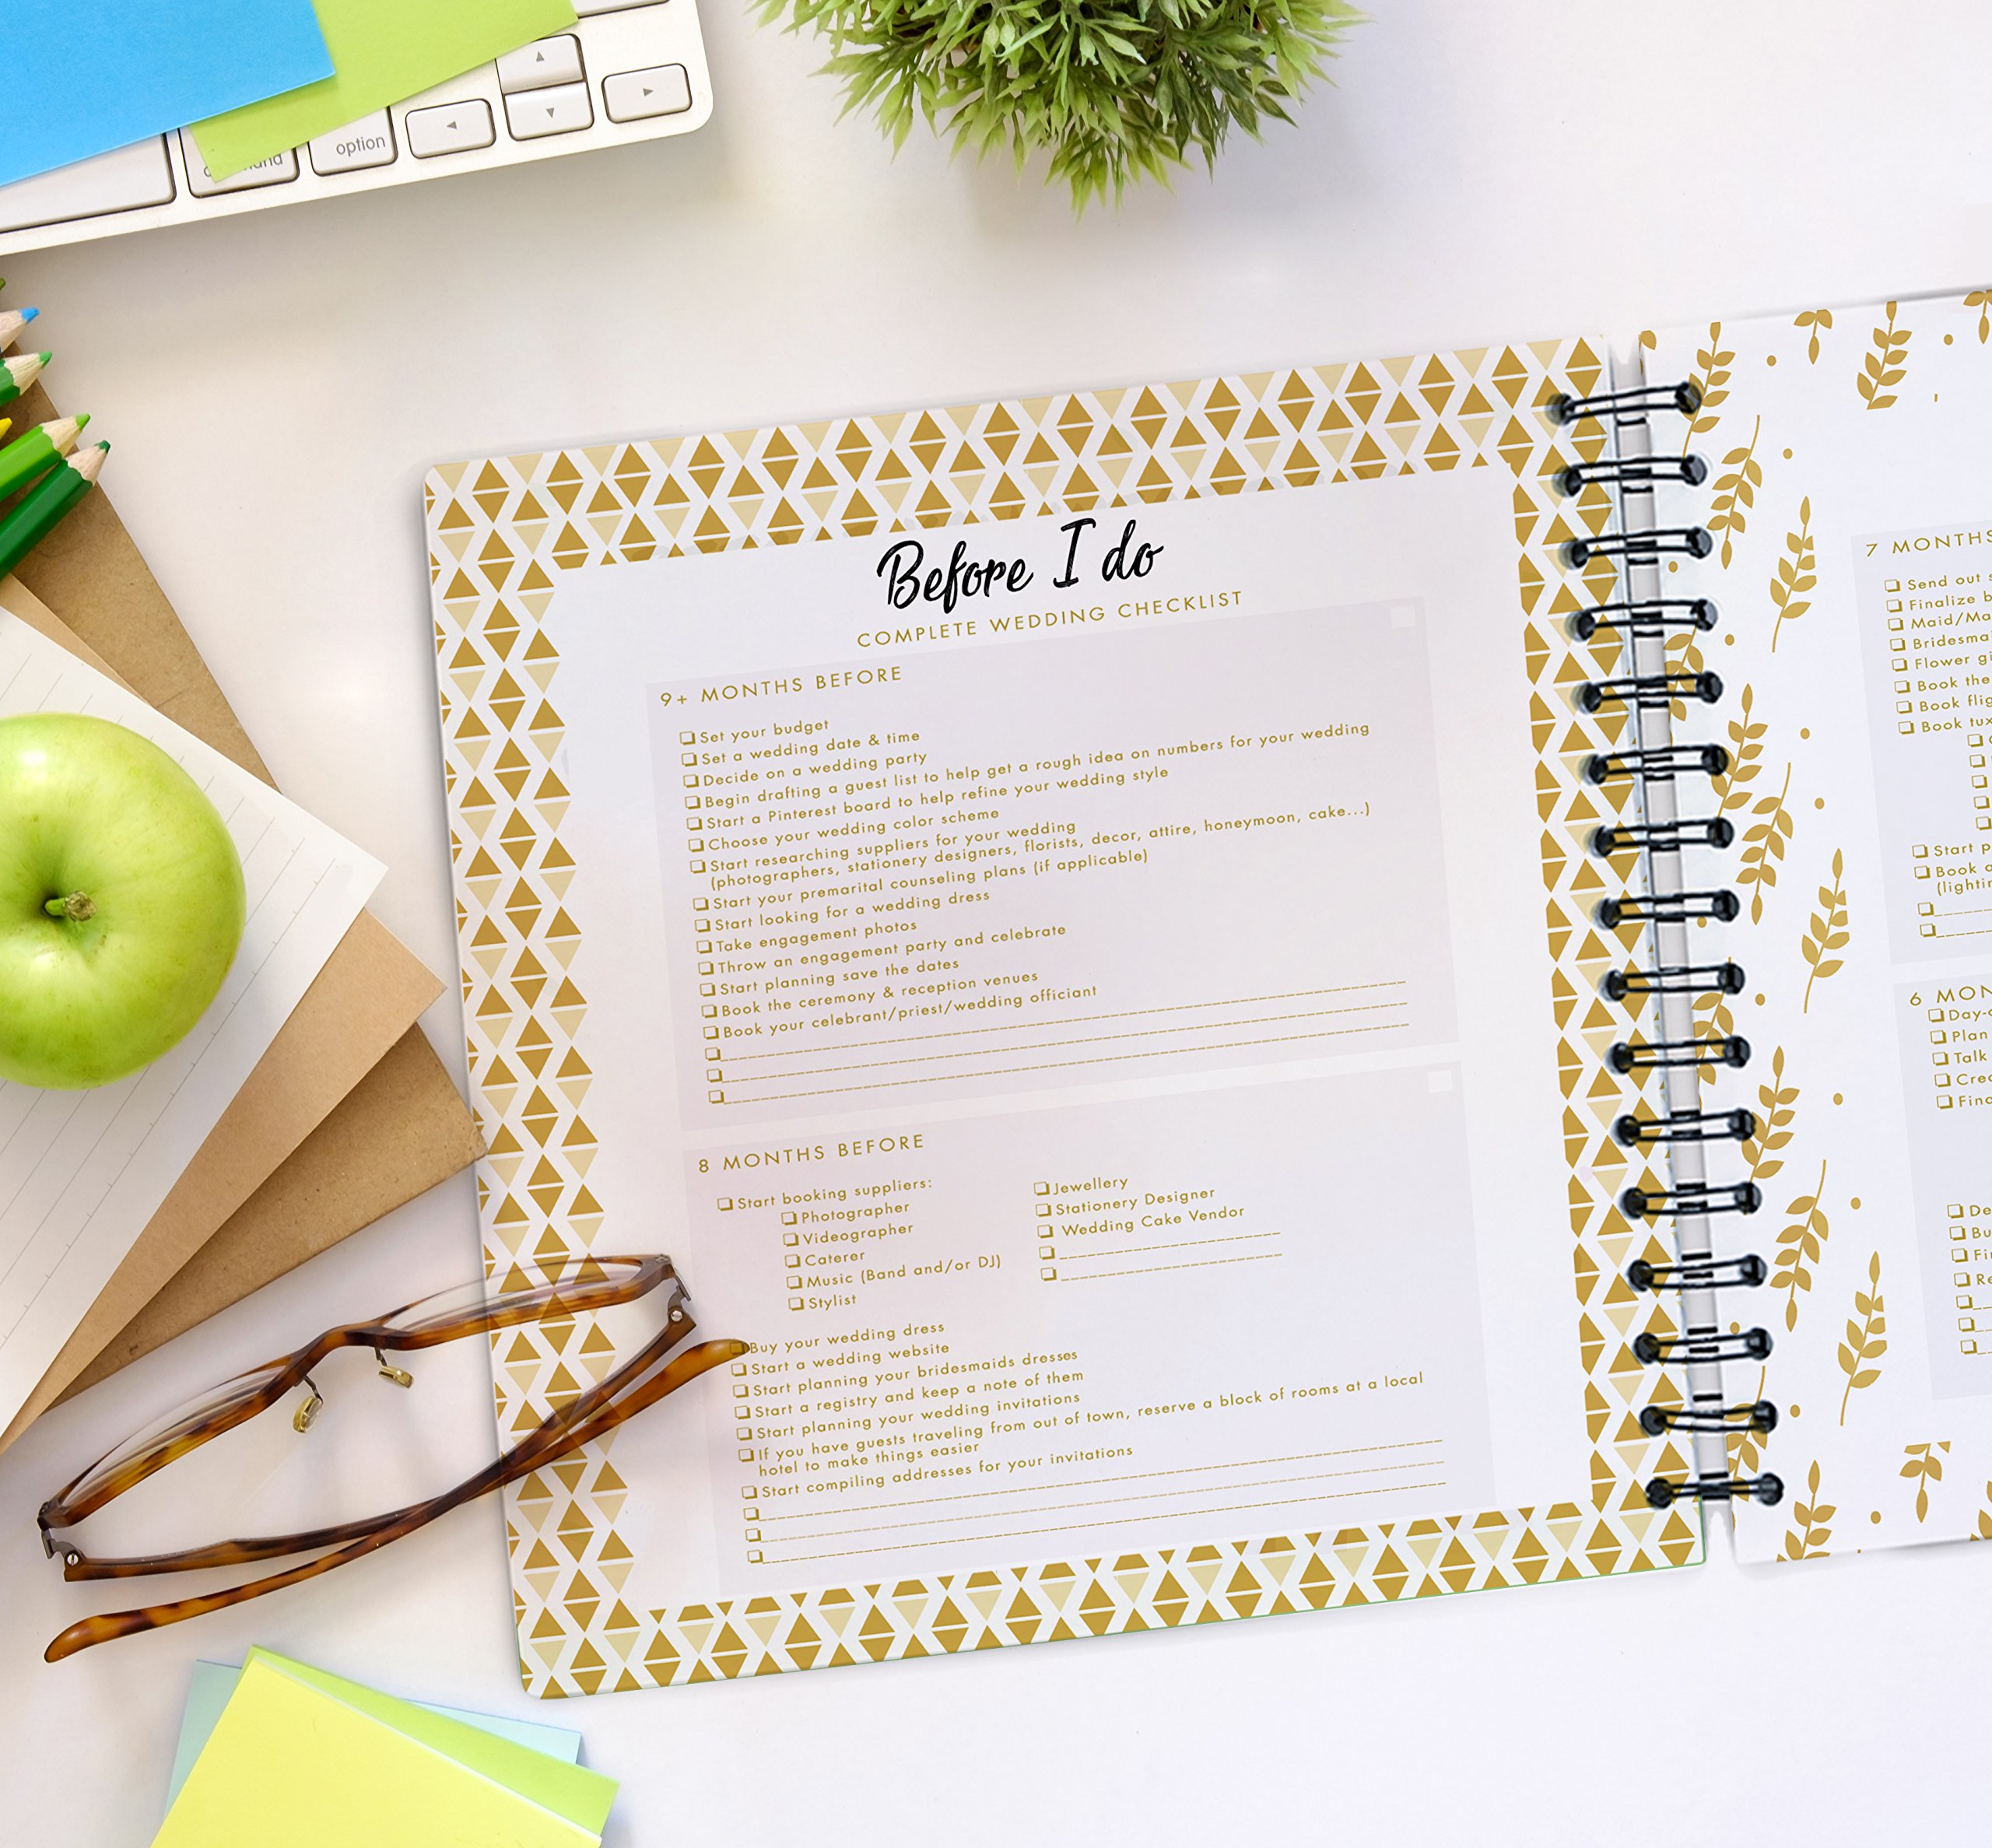 The Ultimate Wedding Planner – A Complete 80 Pages Hardcover Organizer that Includes Checklists, Party Planner, Budget Organizer, Honeymoon and More to Help You Organize The Wedding of Your Dreams! by Unconditional Rosie (Image #2)